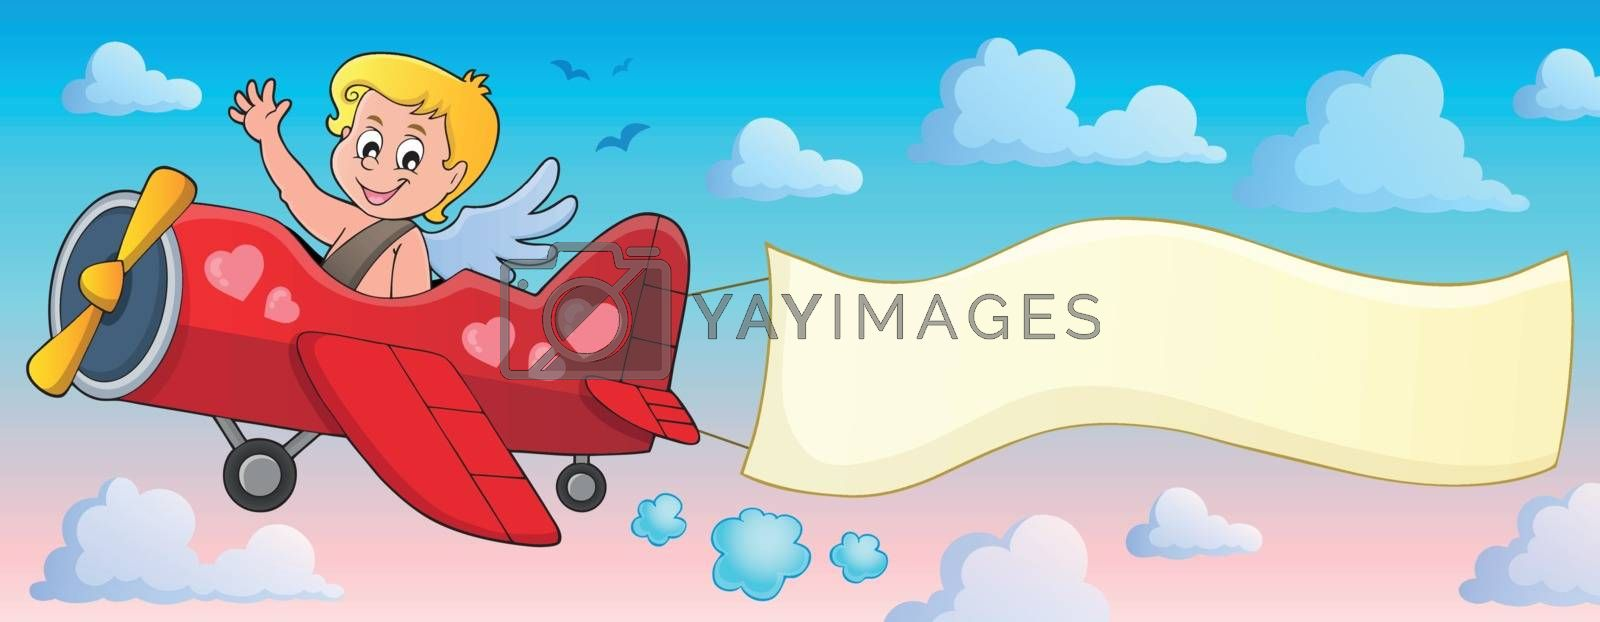 Airplane with Cupid theme image 2 - eps10 vector illustration.